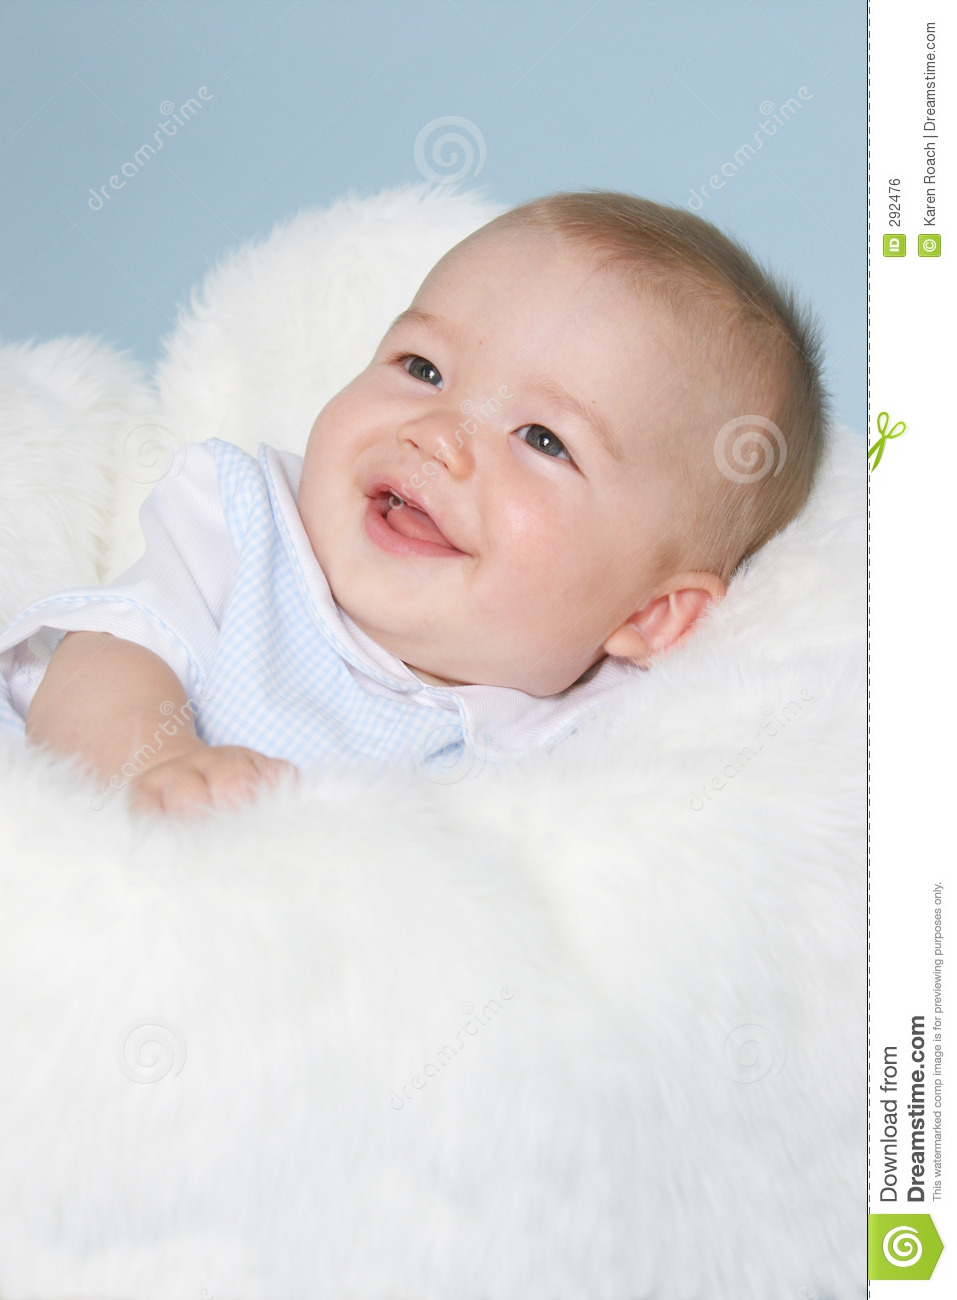 48 Very Best Baby Boy Born Wishes Pictures. Published on December 8, , under Images. Love It A Beautiful Baby Boy. A Brand New Baby Boy To Fill Our Hearts And Lives With Joy. A New Baby Boy To Love & Hug. A New Baby Boy. Baby Boy Arrived Greetings. Baby Boy Card. Baby Boy .